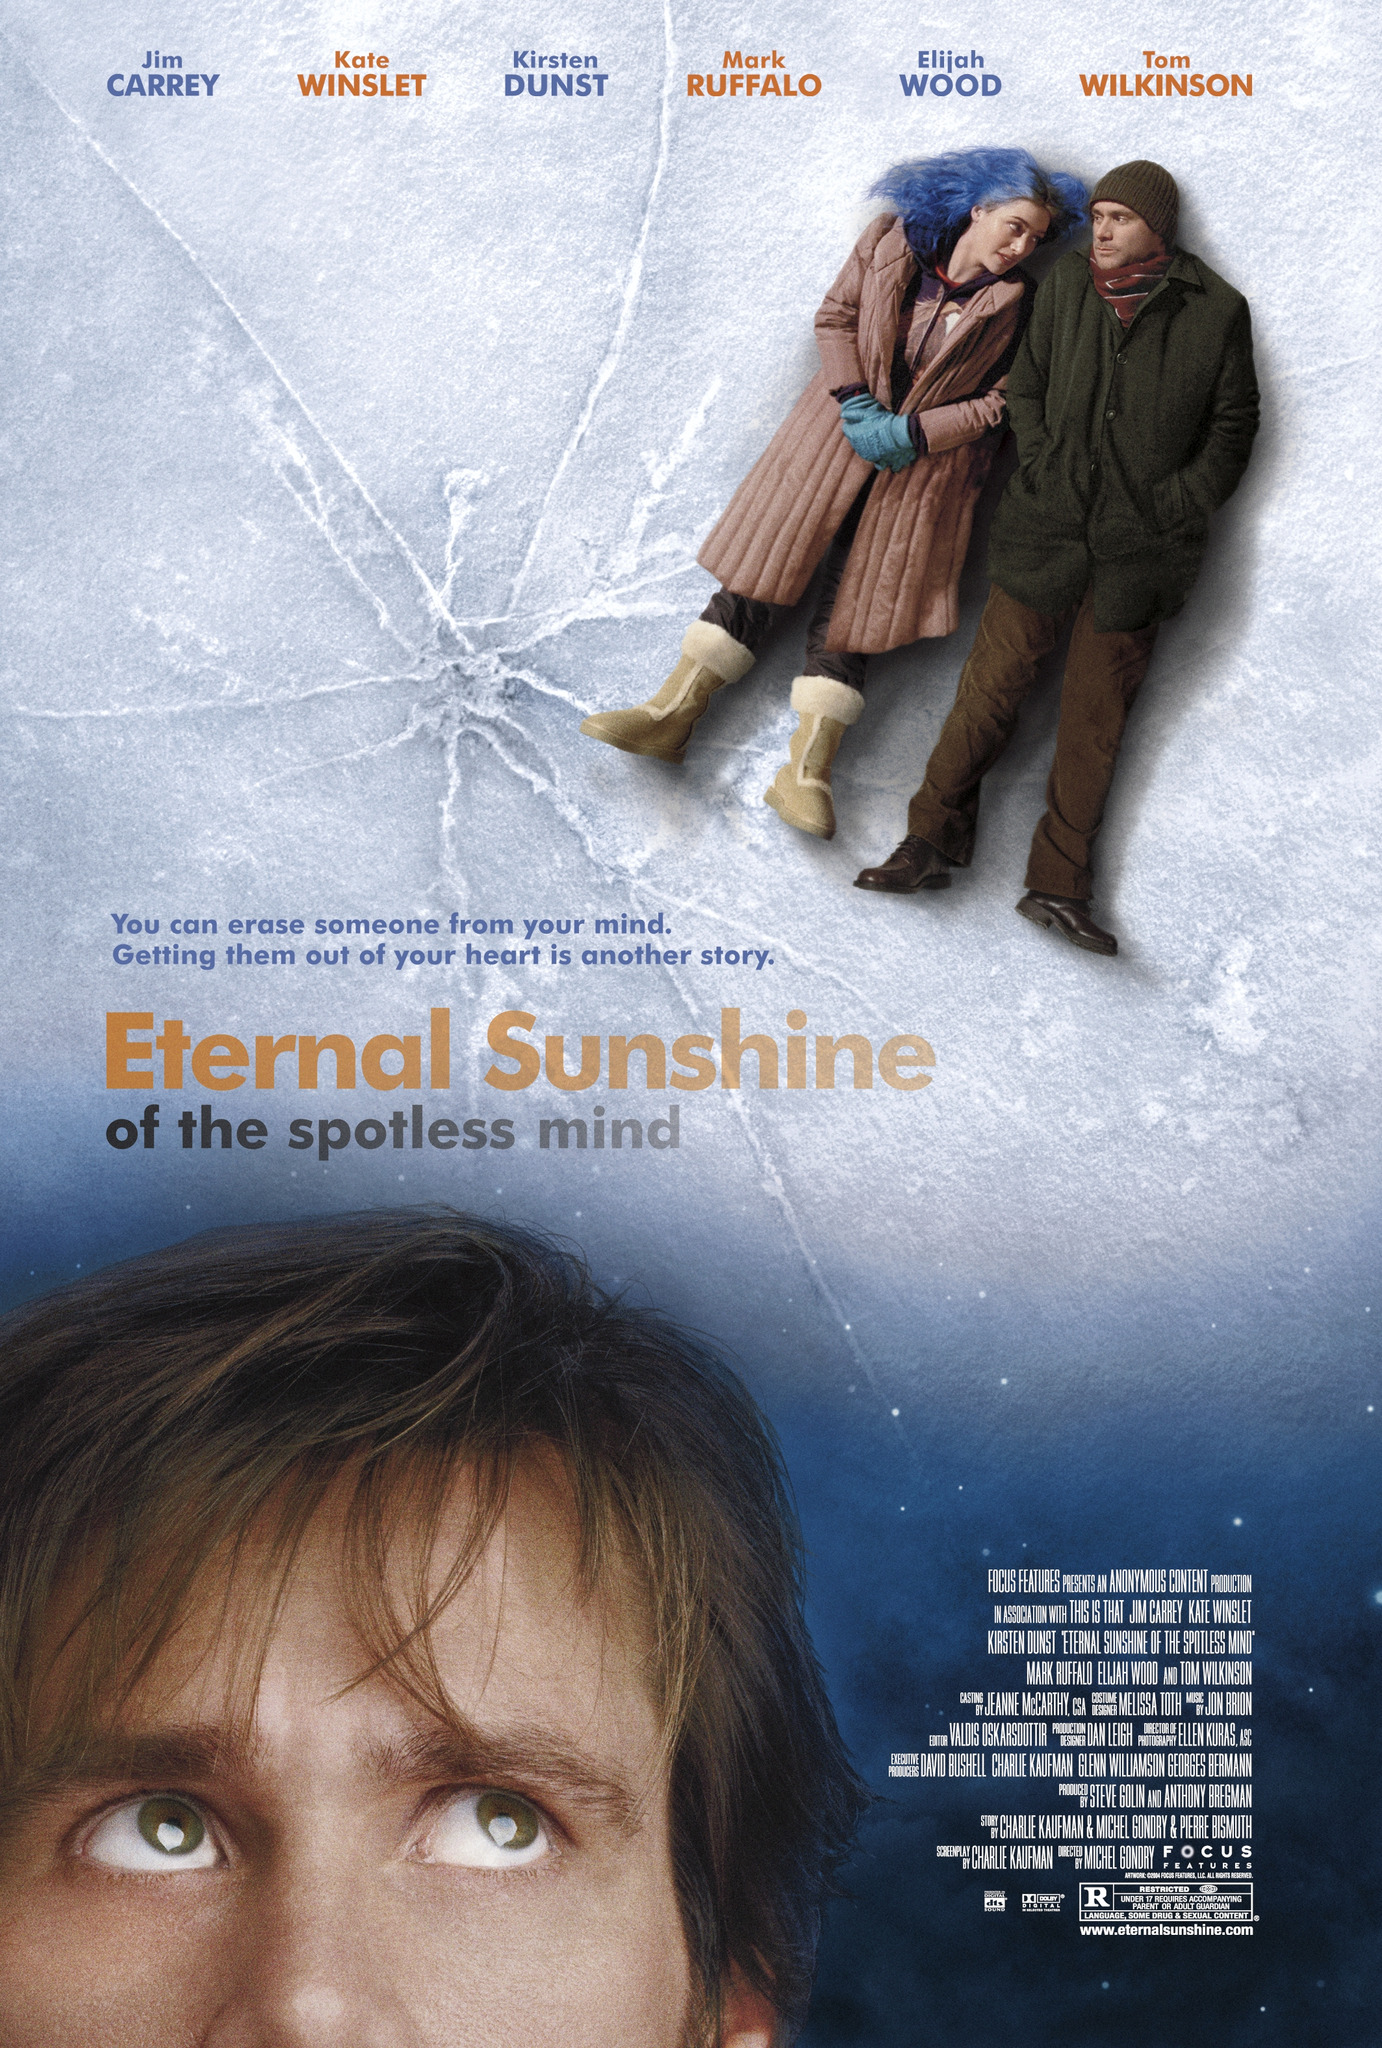 Eternal Sunshine of the Spotless Mind (2004) - IMDb